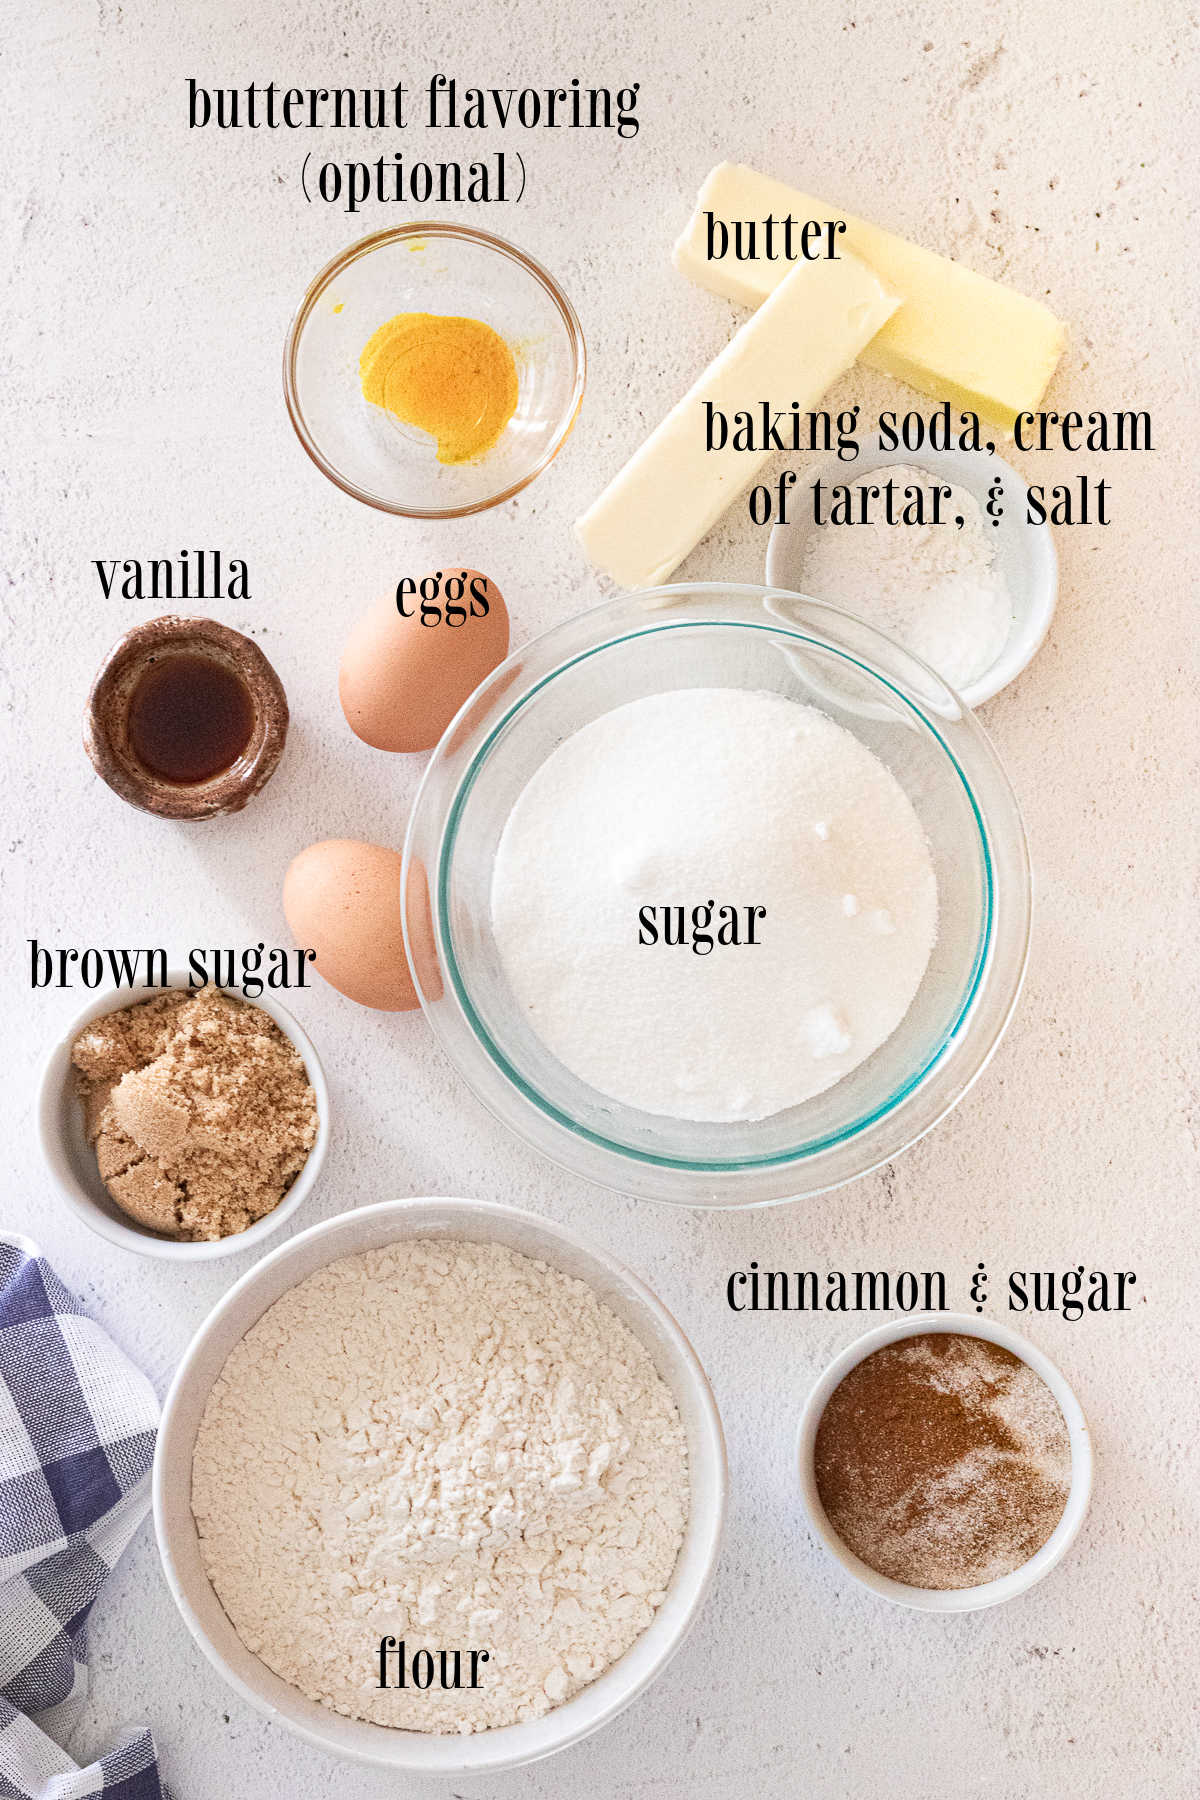 Ingredients for snickerdoodle cookies with labels.